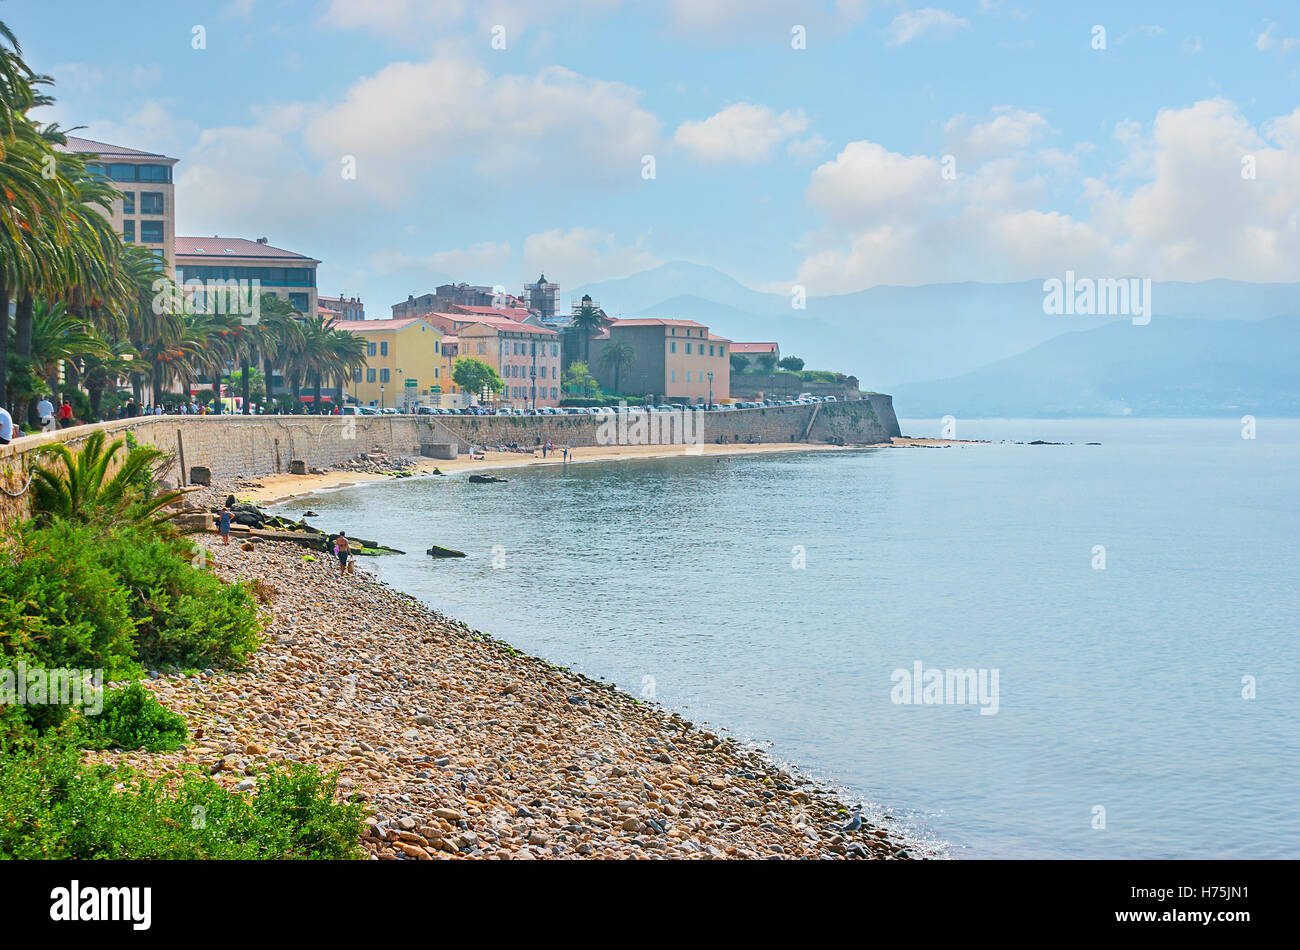 The pleasant walk along the coast of Ajaccio, one of the most beautiful resorts of Corsica, France. - Stock Image